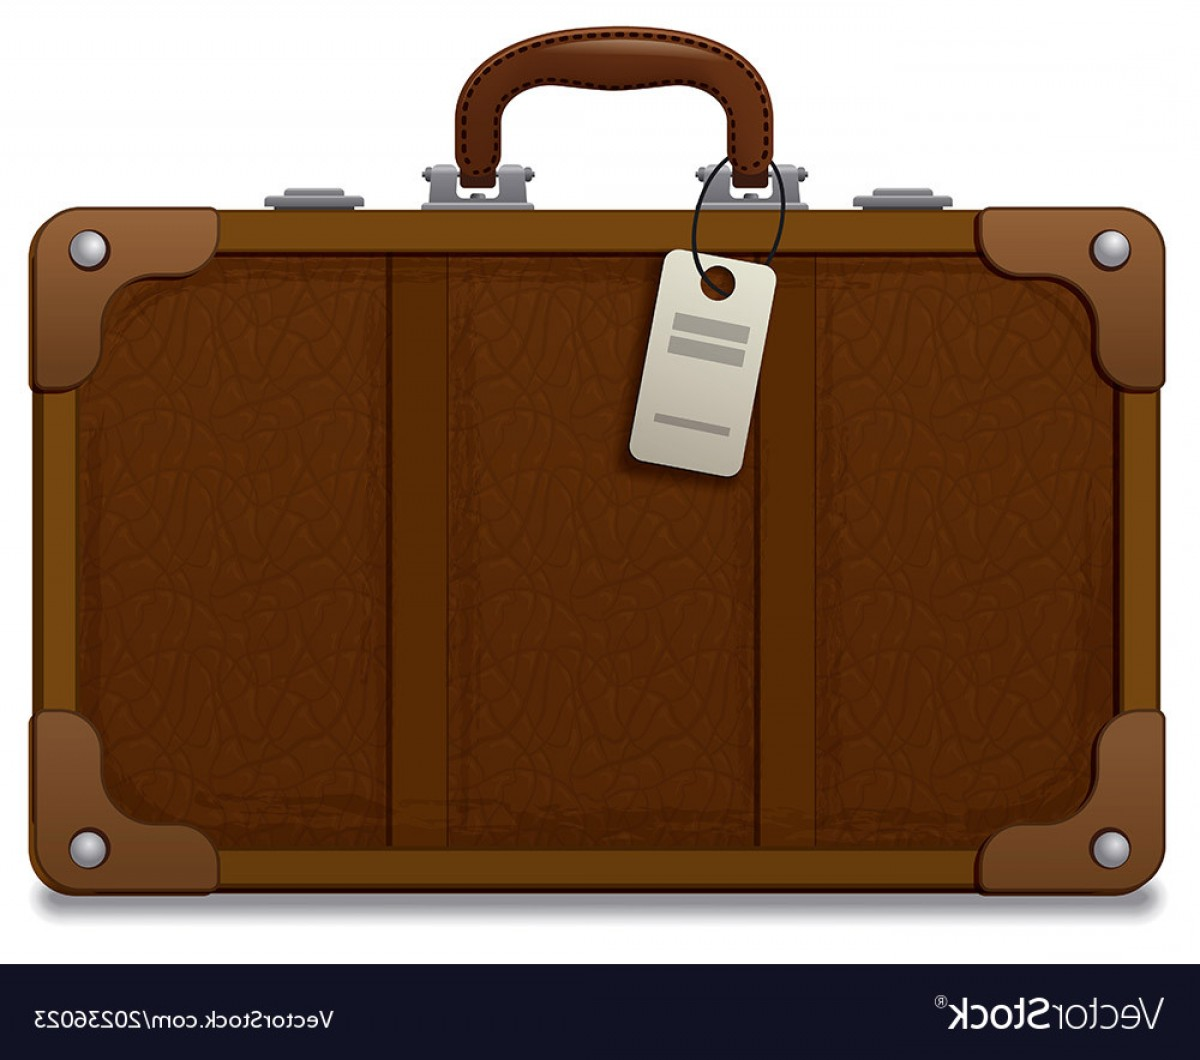 Vintage Luggage Vector: Old Vintage Style Suitcase Vector